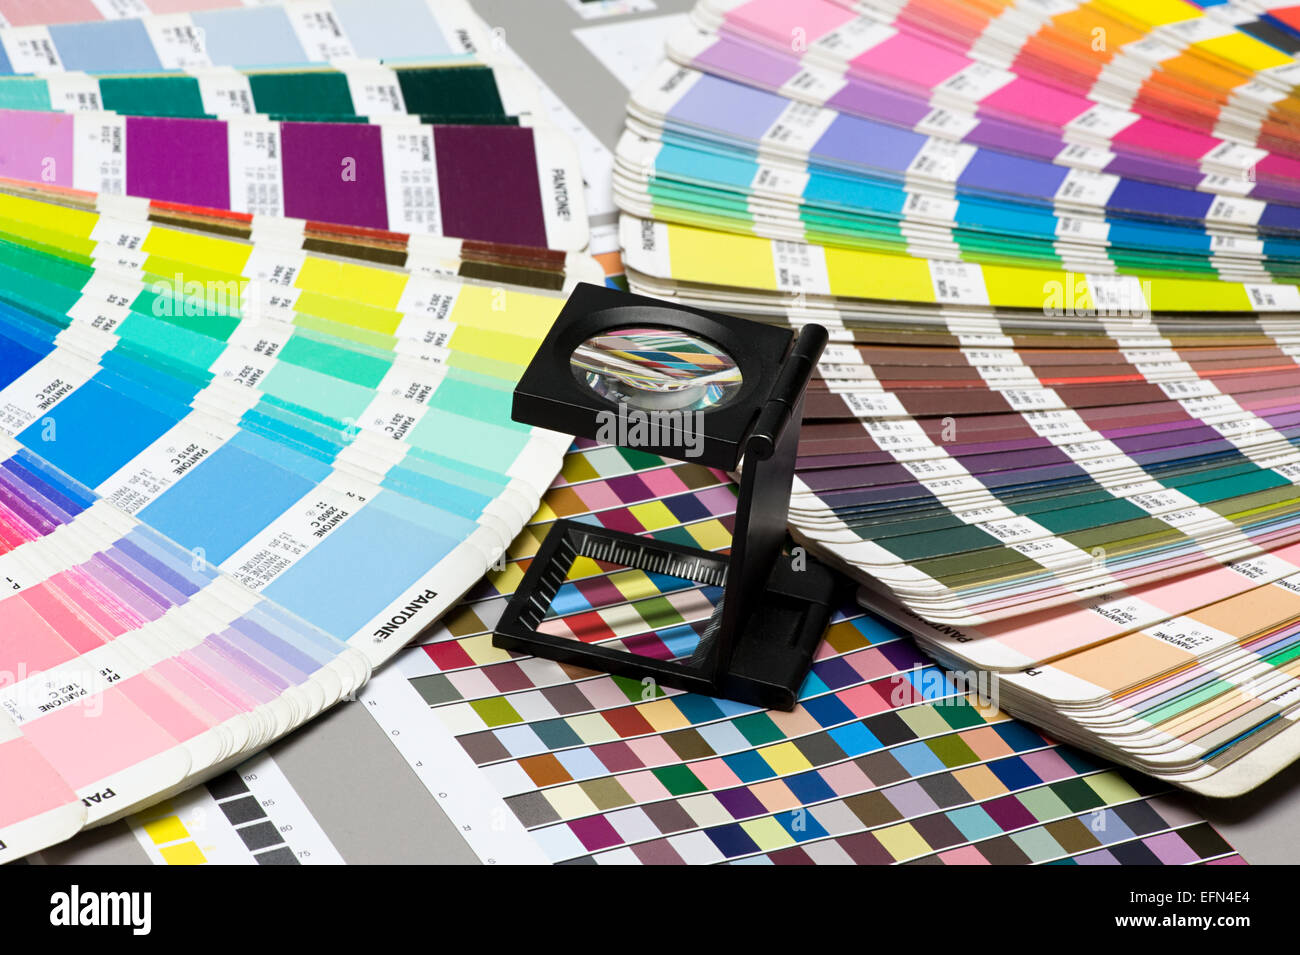 Close up Small Magnifying Glass Device on Top of Pantone Color Guide Above the Table. - Stock Image